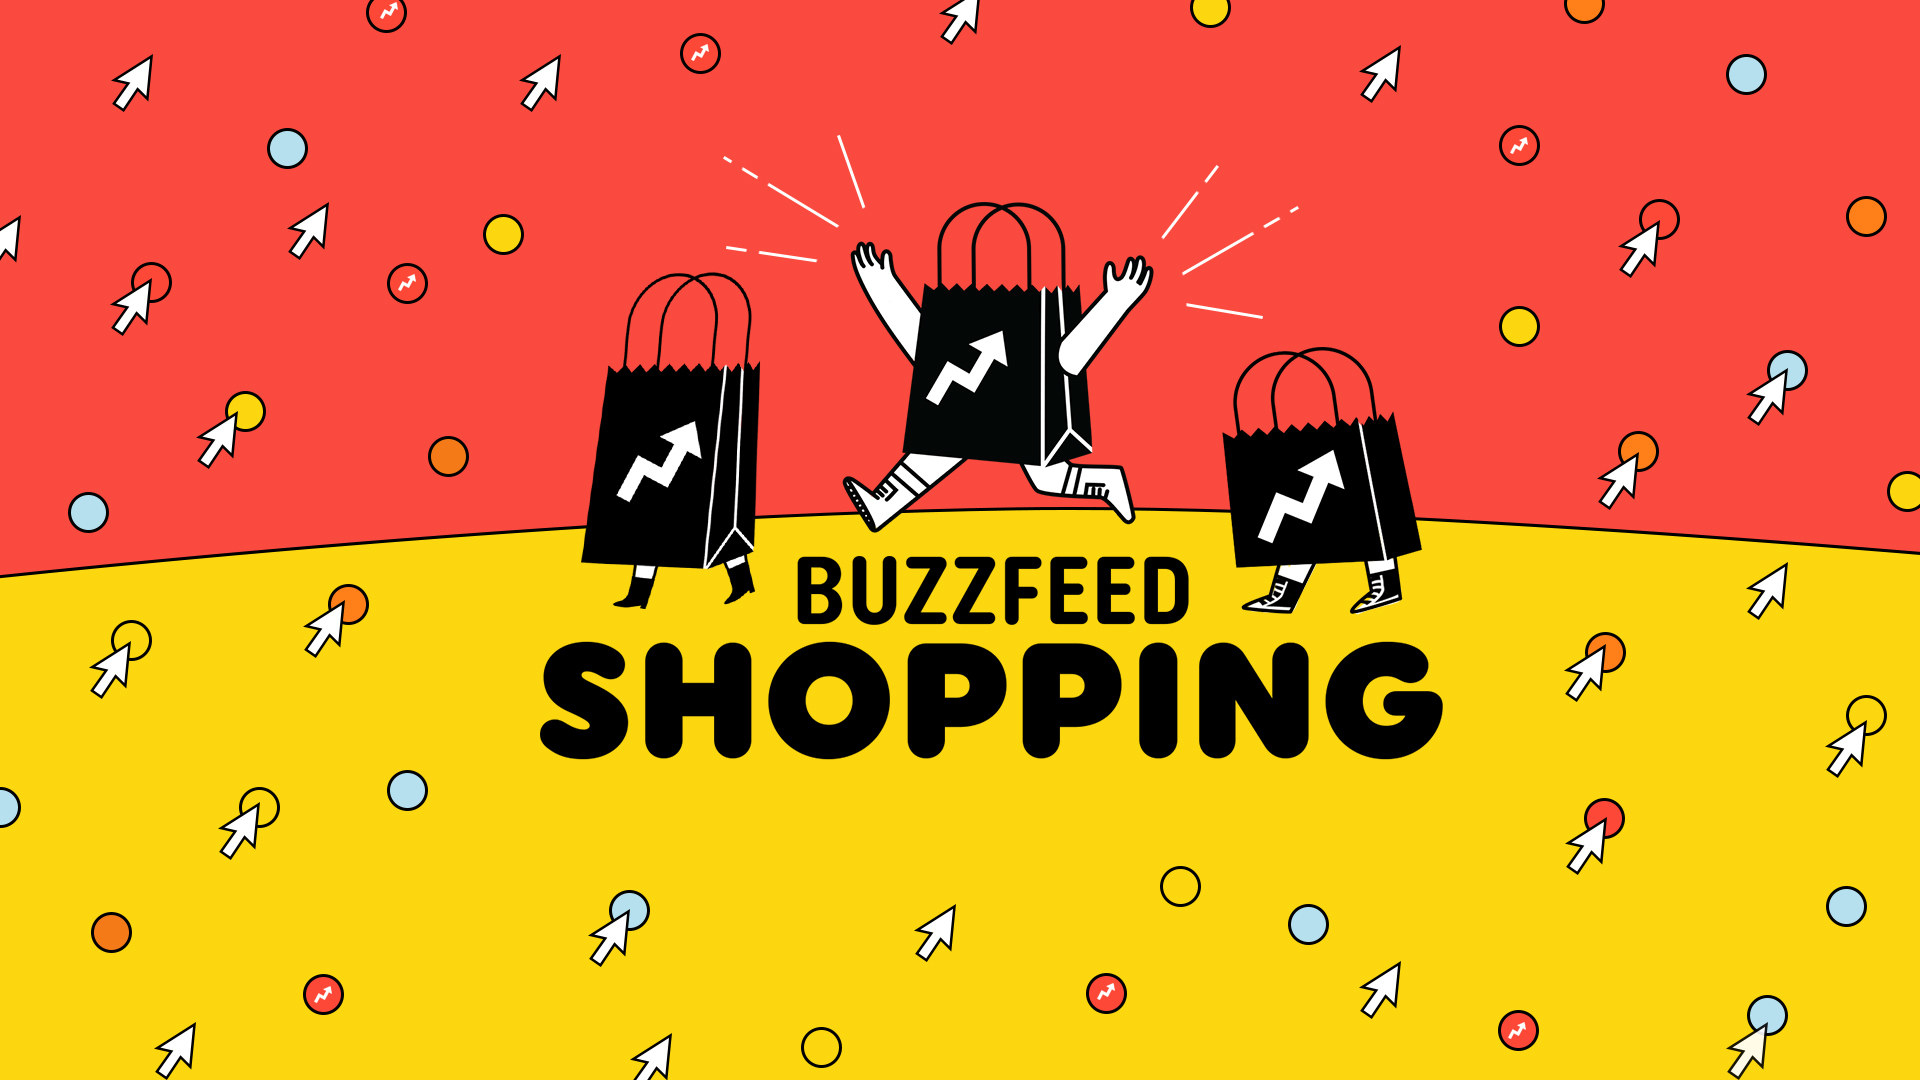 The BuzzFeed Shopping logo featuring an illustration of dancing handbags